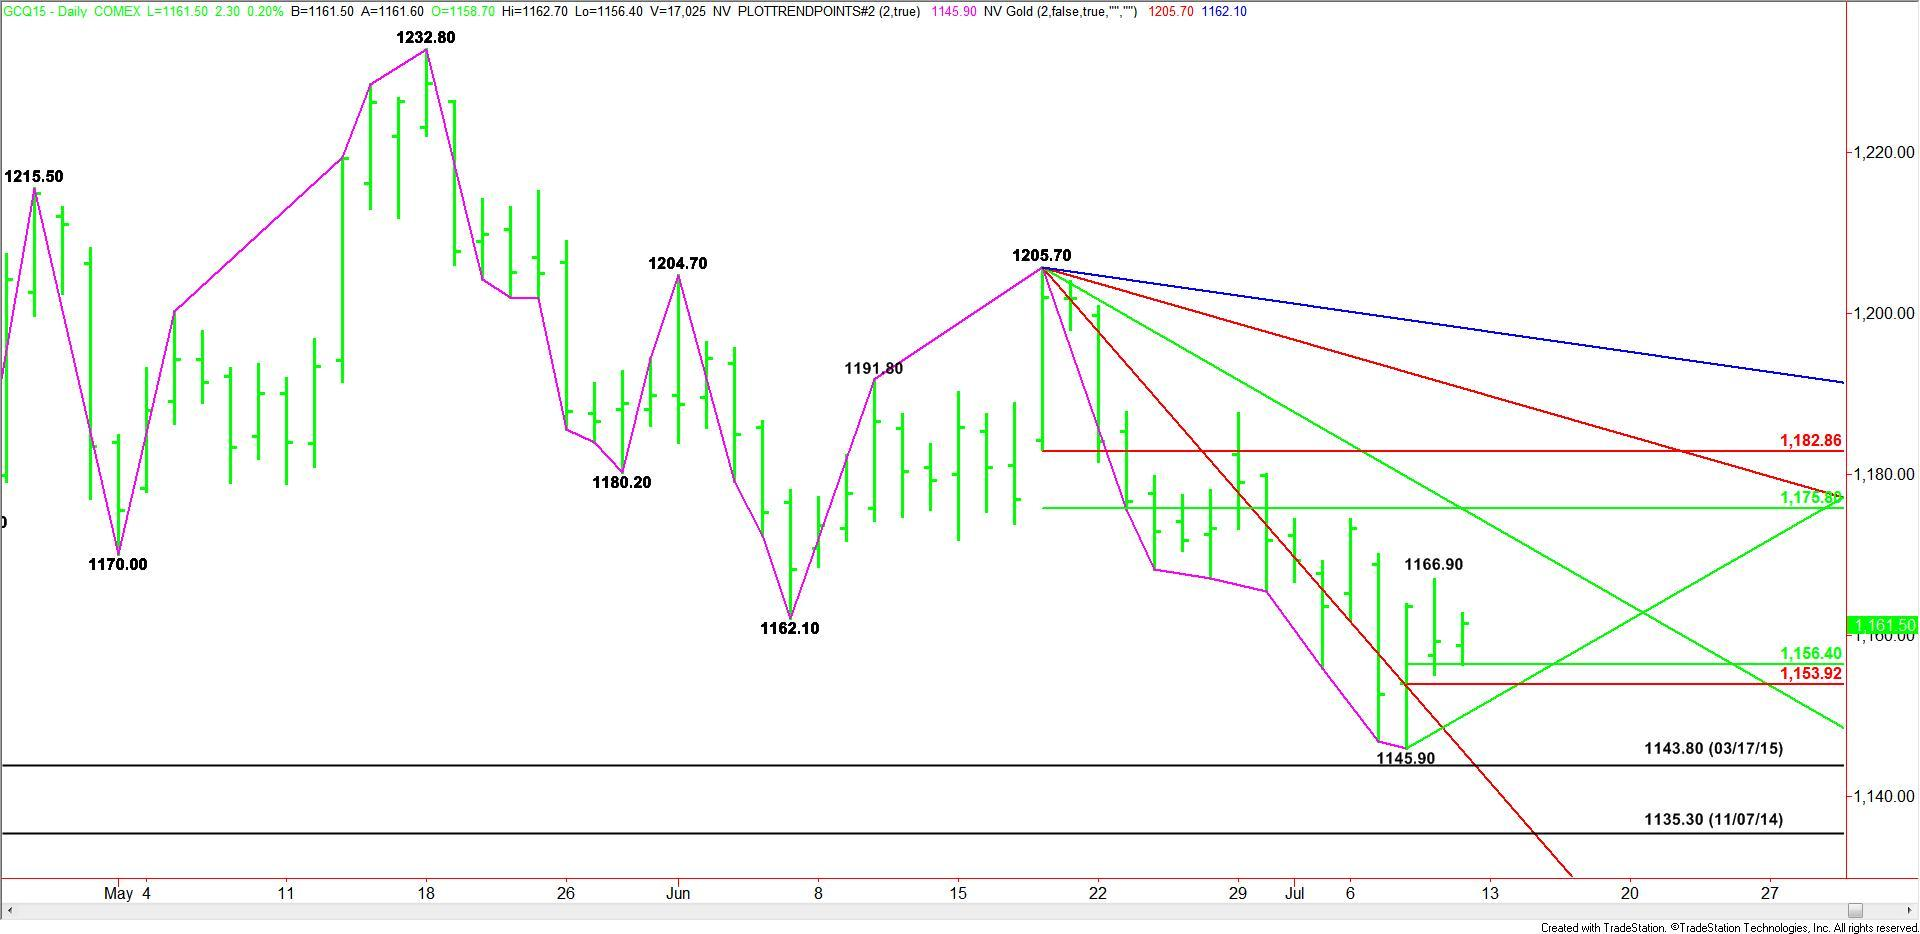 14 kB · png, Green card monthly activity near my priority date506